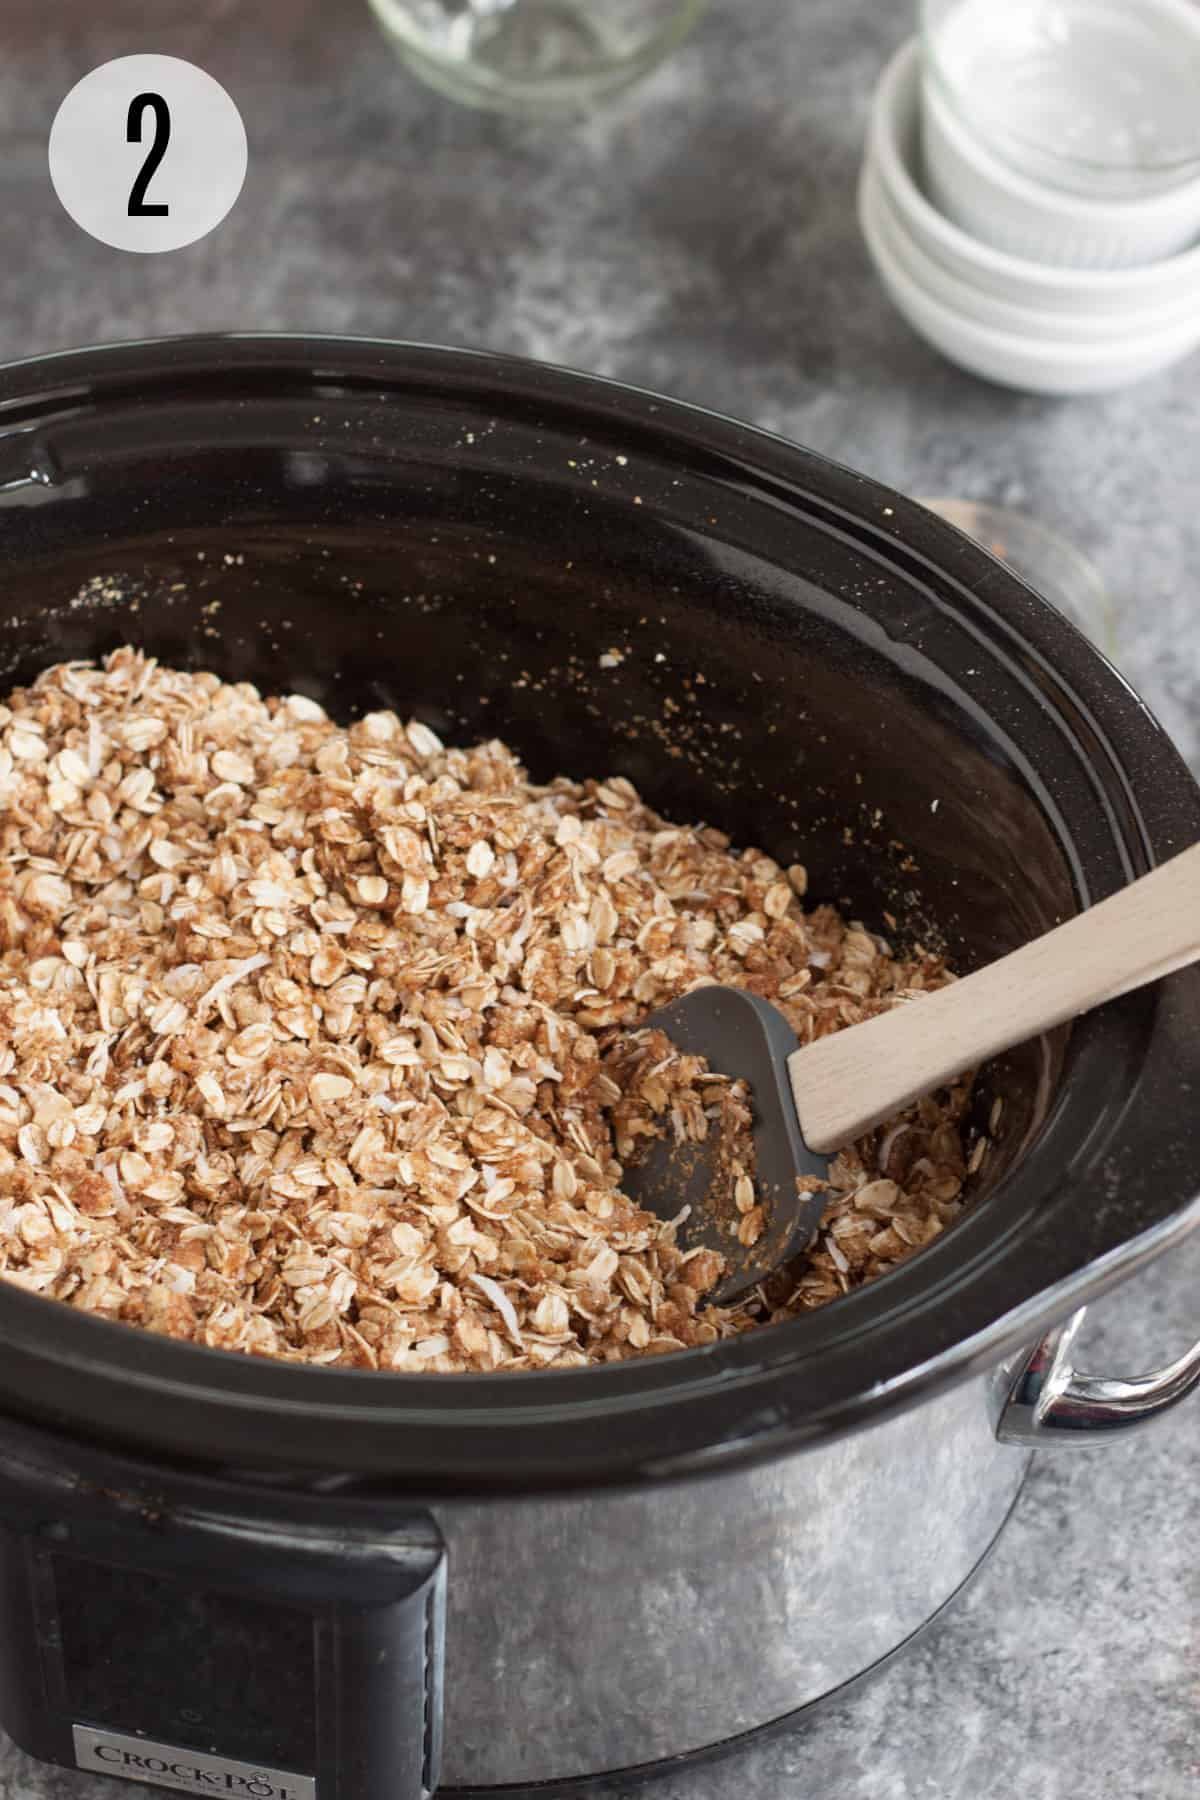 Black slow cooker with homemade granola mixture being stirred by grey rubber spatula with wooden handle and ingredient bowls in background.